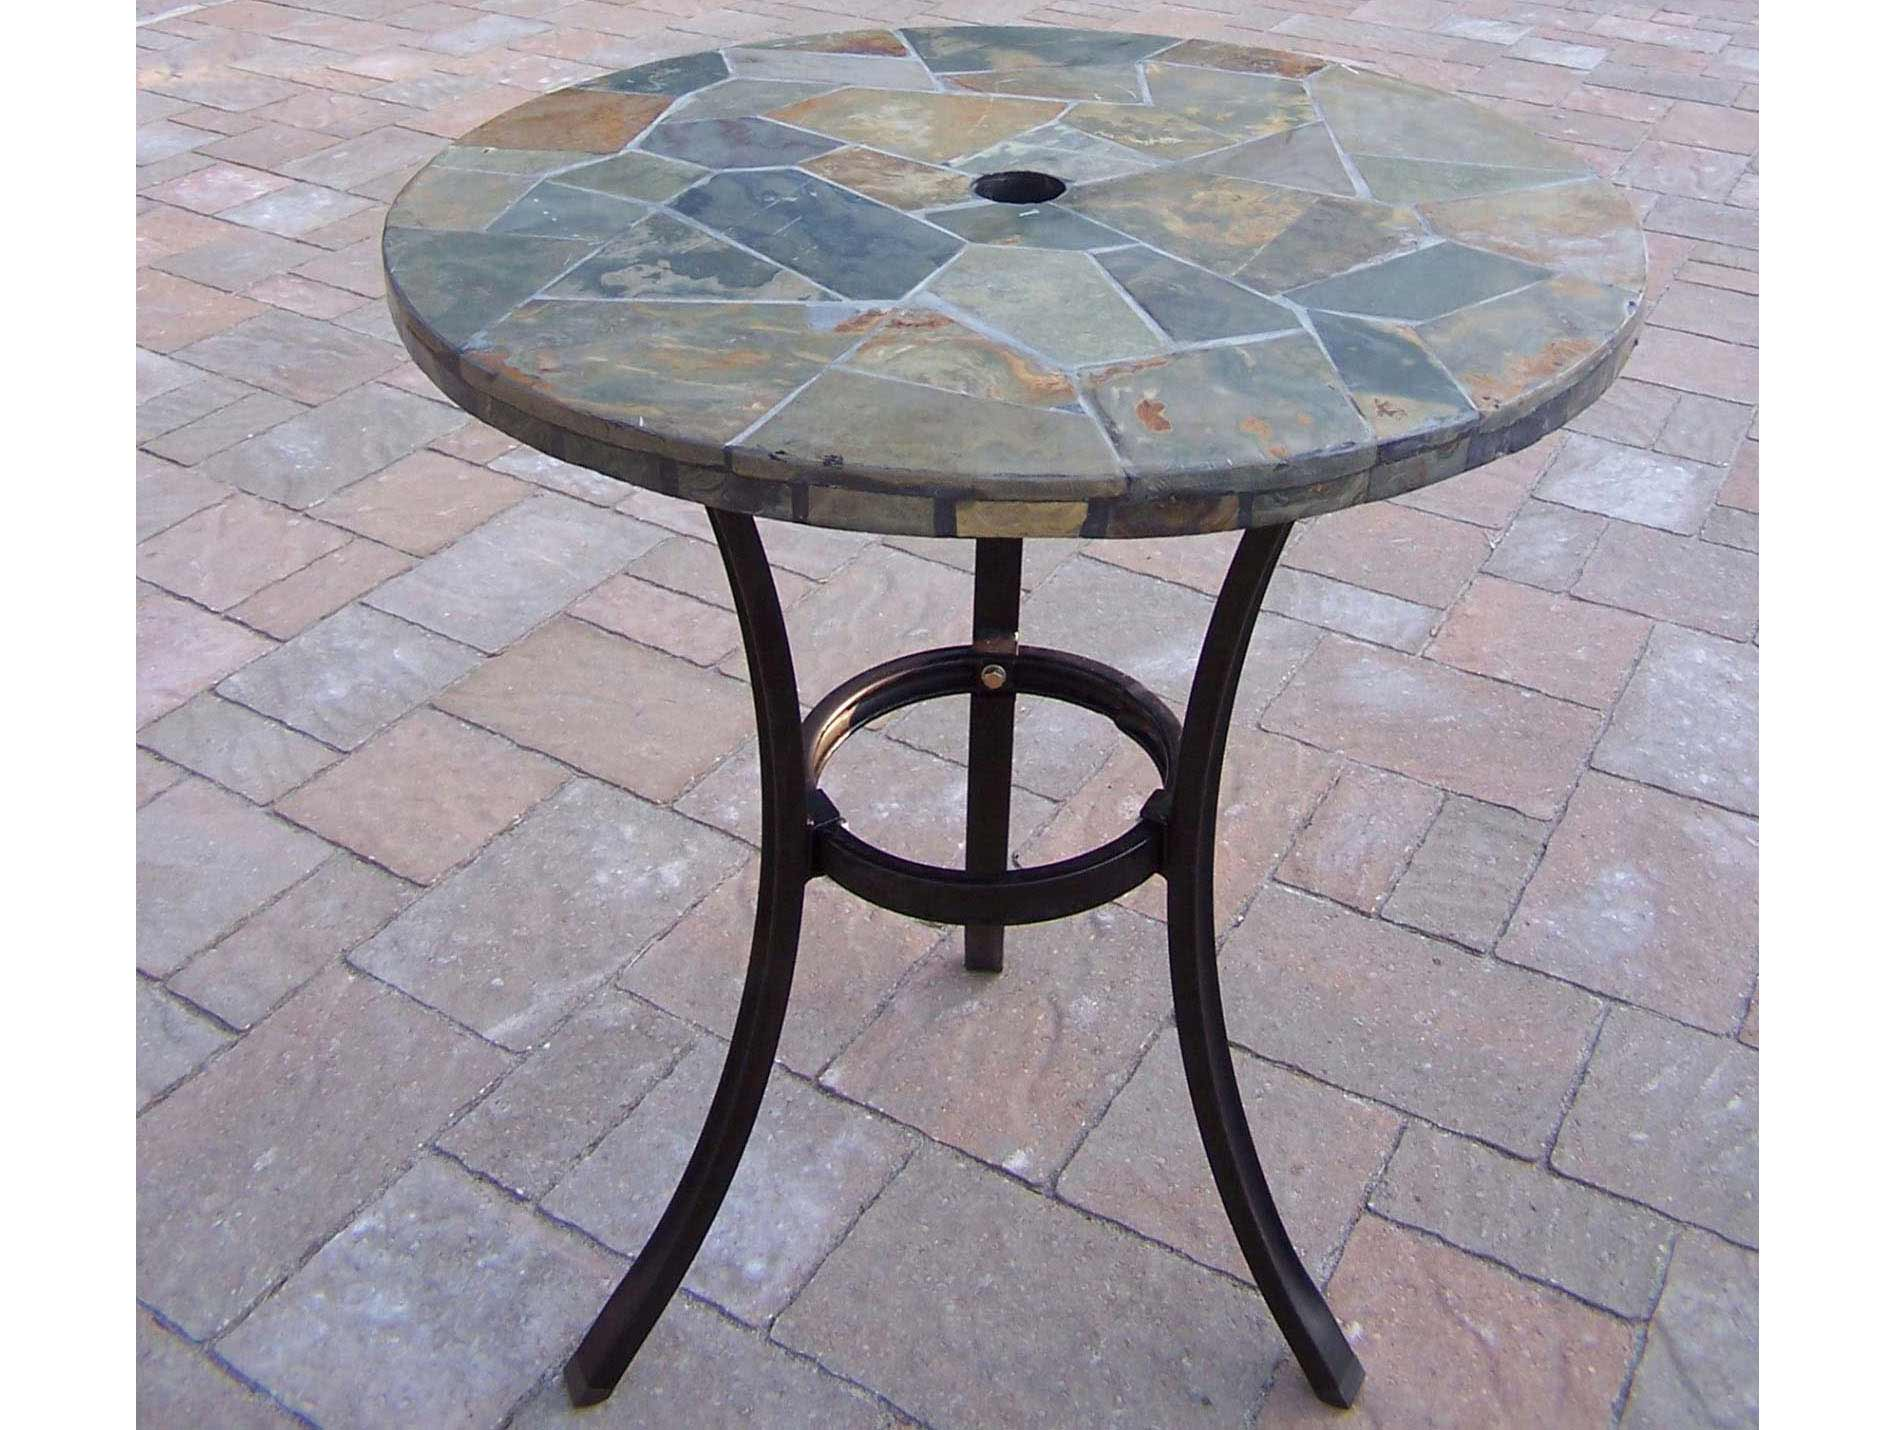 ideas enchanting bistro tables for home furniture table and chairs outdoors black metal set mosaic outdoor stone accent unique rustic end folding glass coffee steel hairpin legs